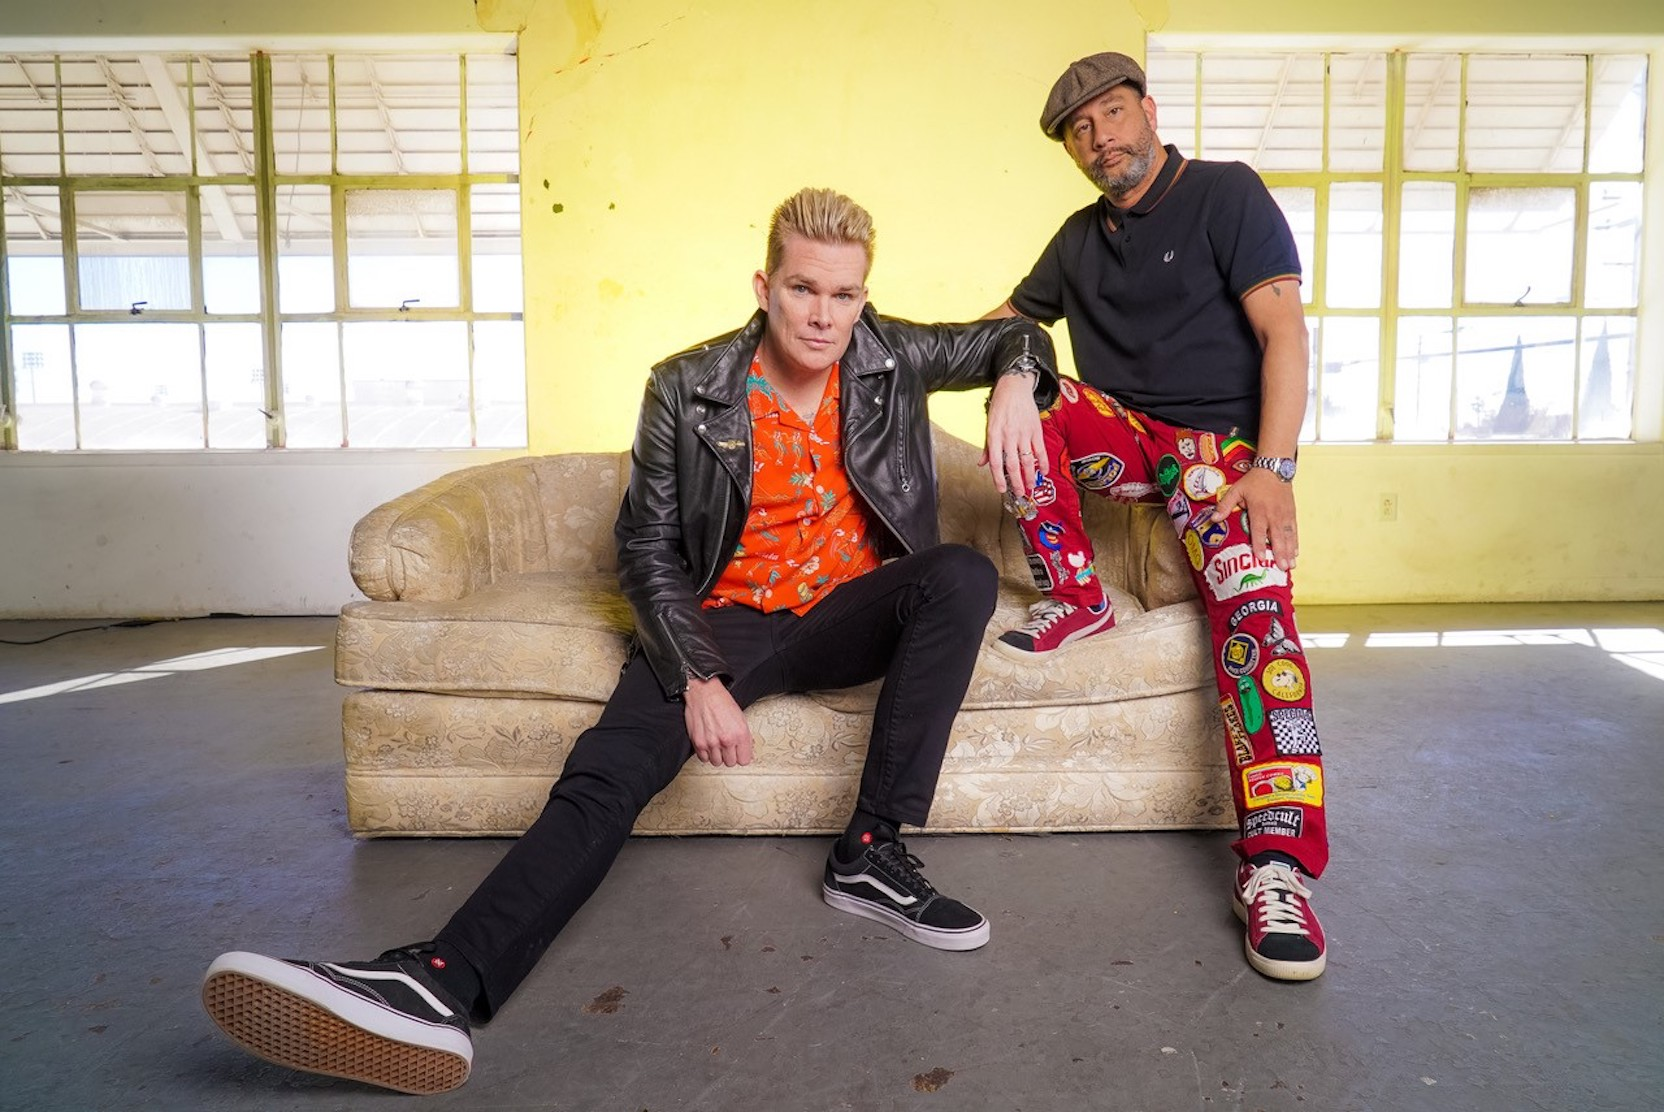 You'll Have to Pry the Microphone From Mark McGrath's Cold, Dead Hands - VICE